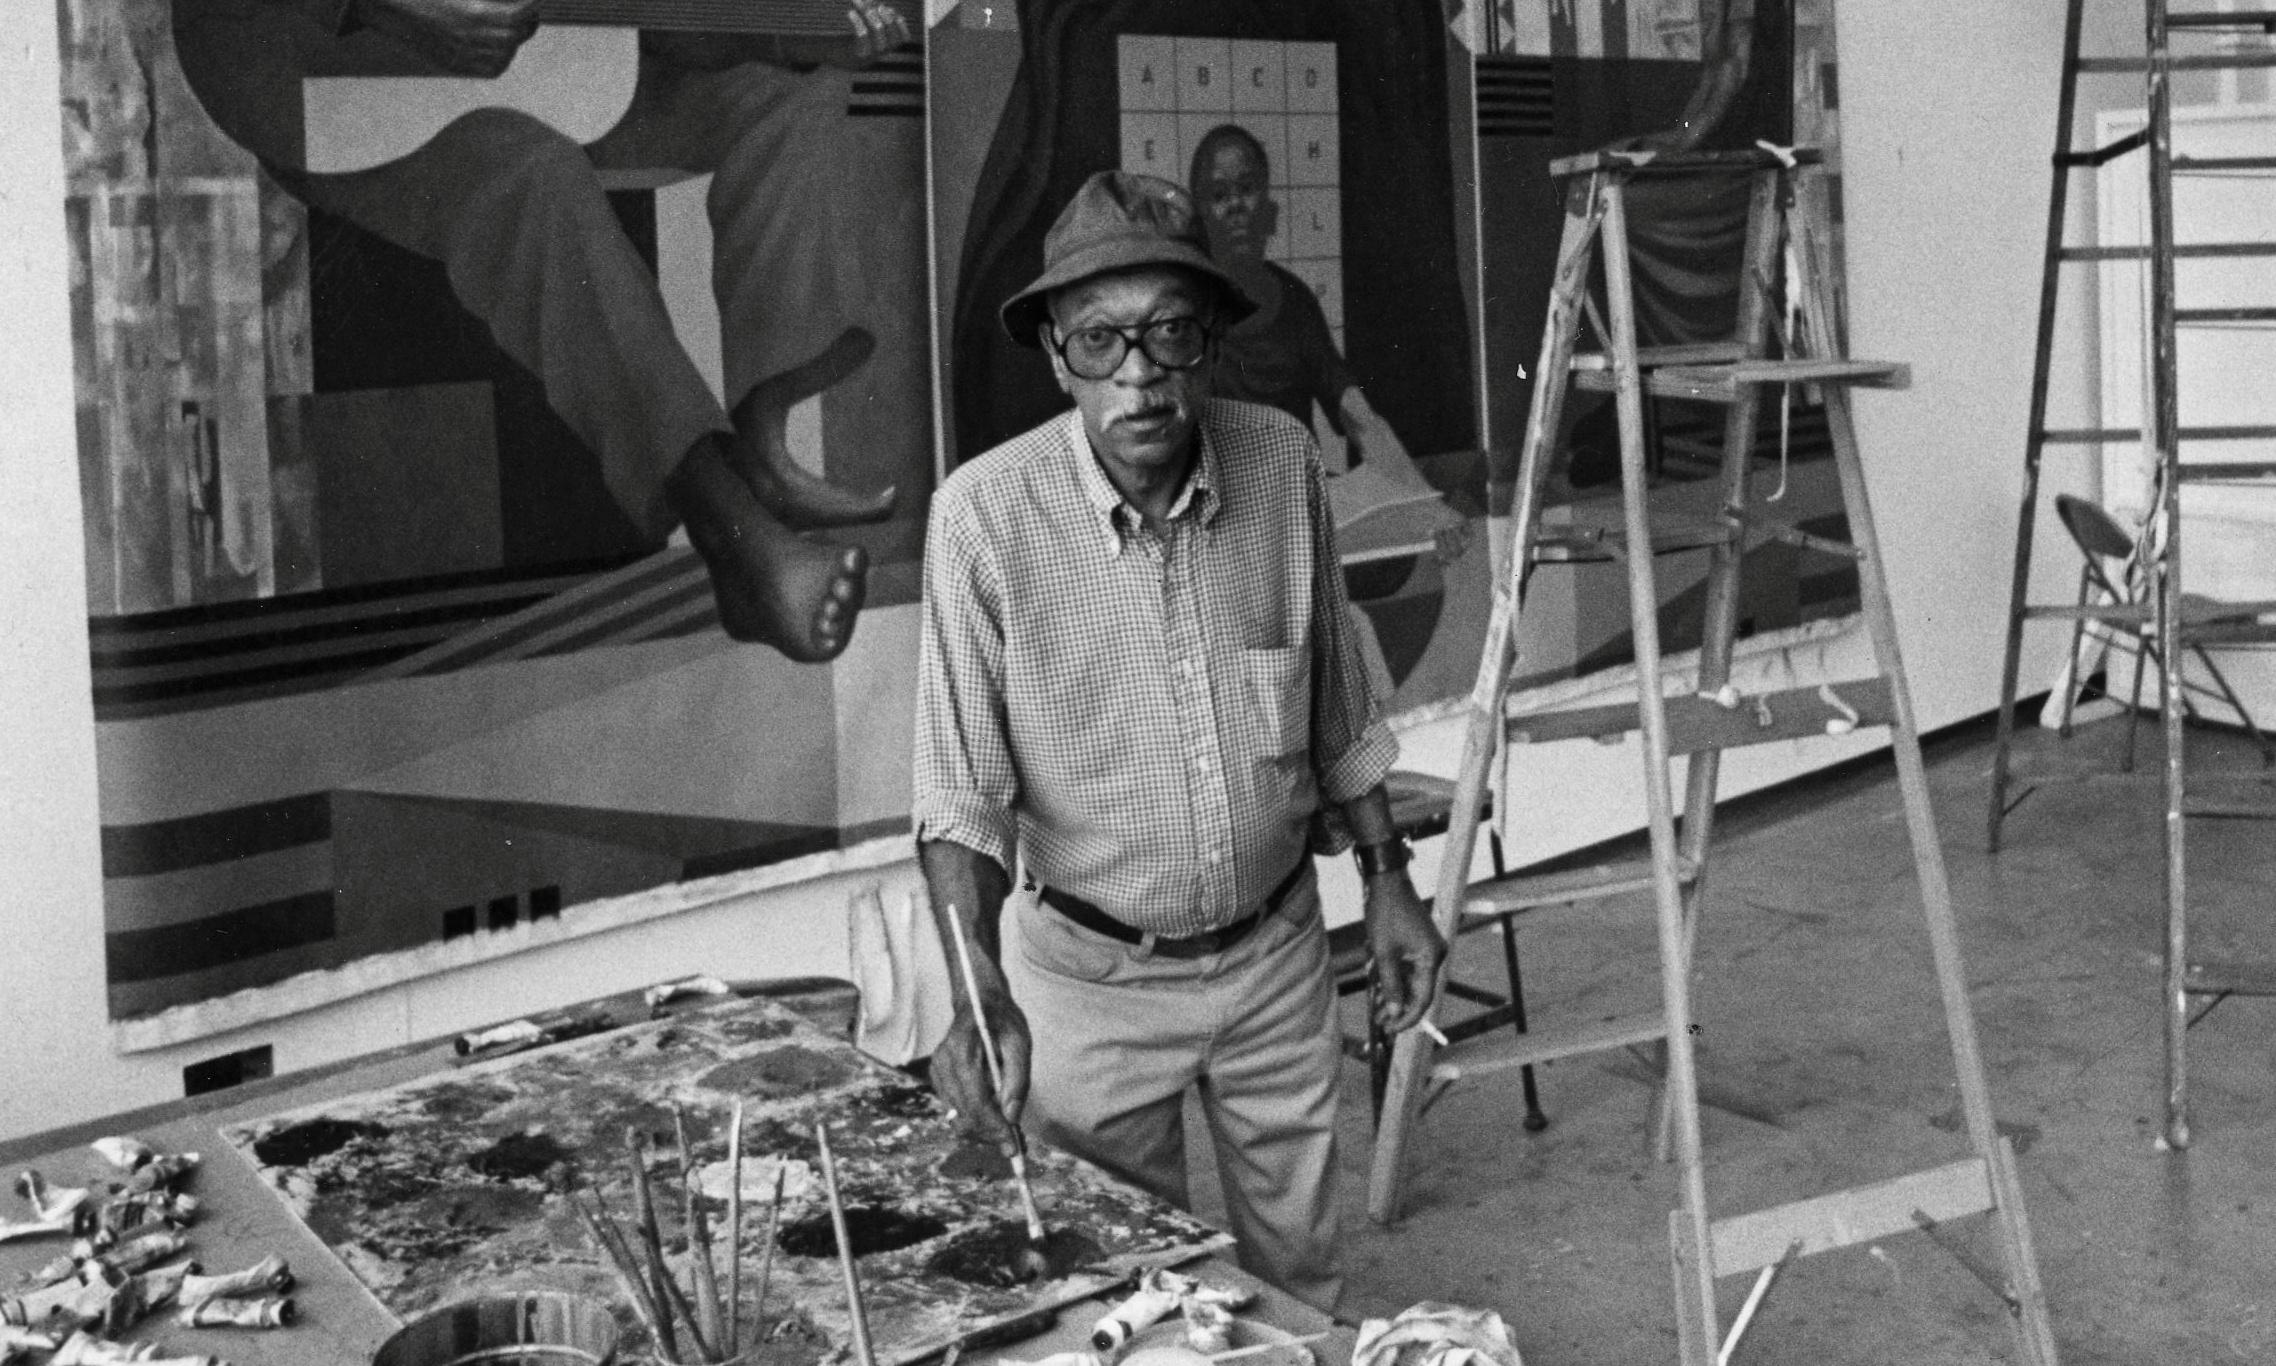 'The world looked different to him': Charles White's black America